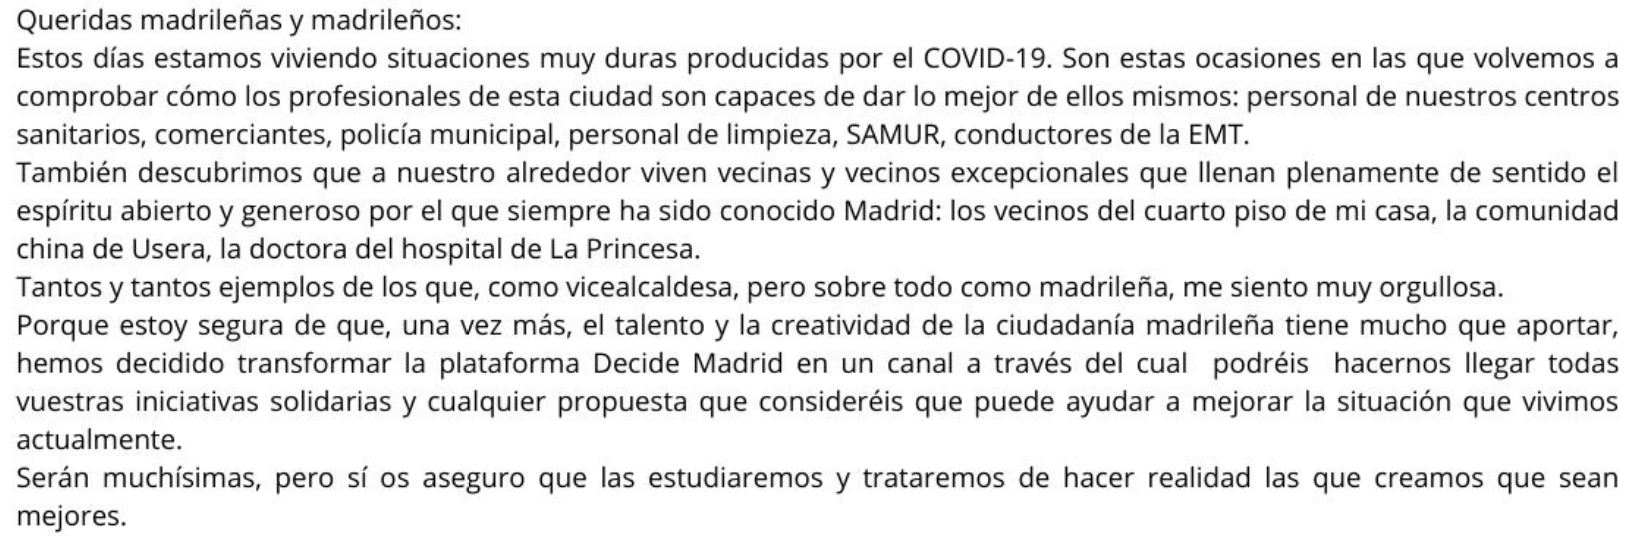 Extracto carta de la Vicealcaldesa